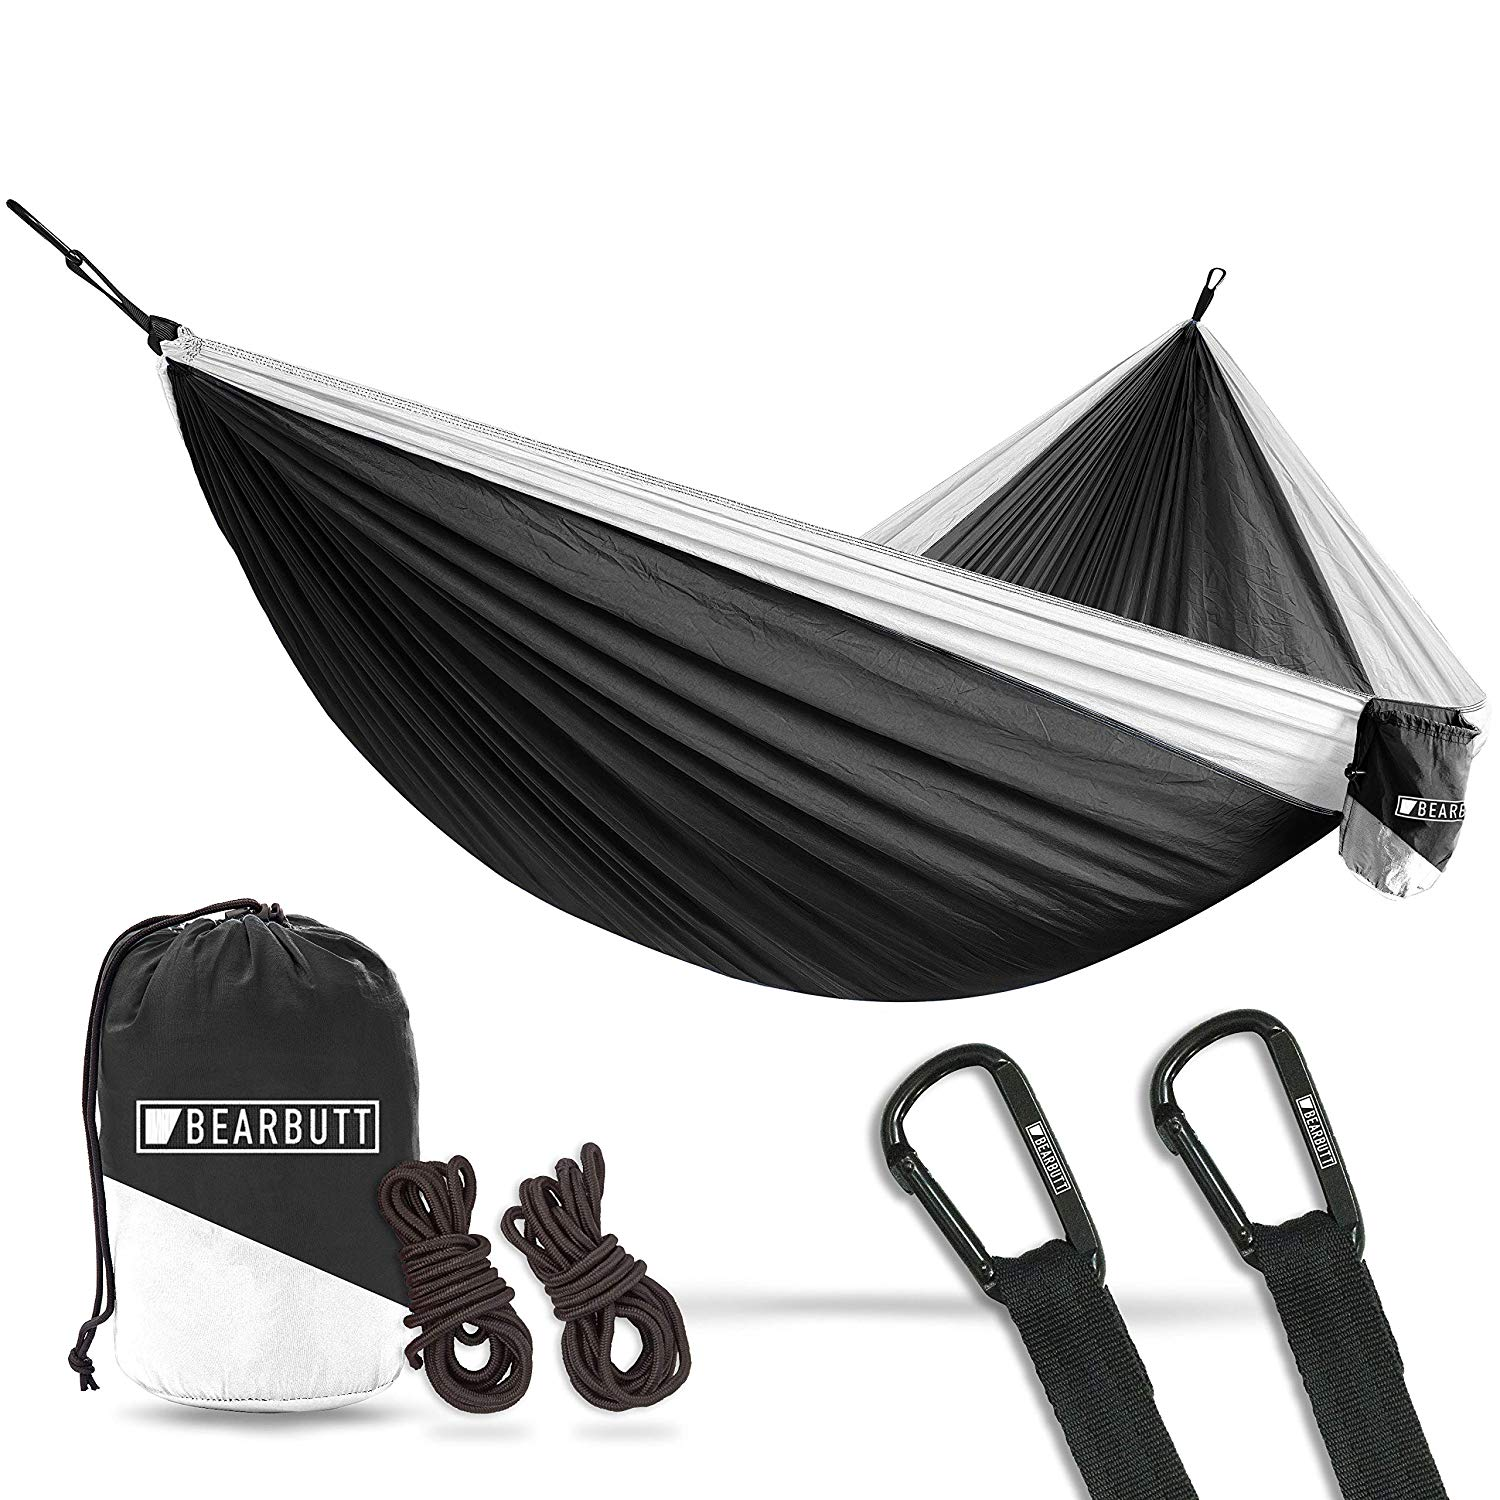 Top 10 Best Hammock Underquilts For The Money 2020 Reviews 10